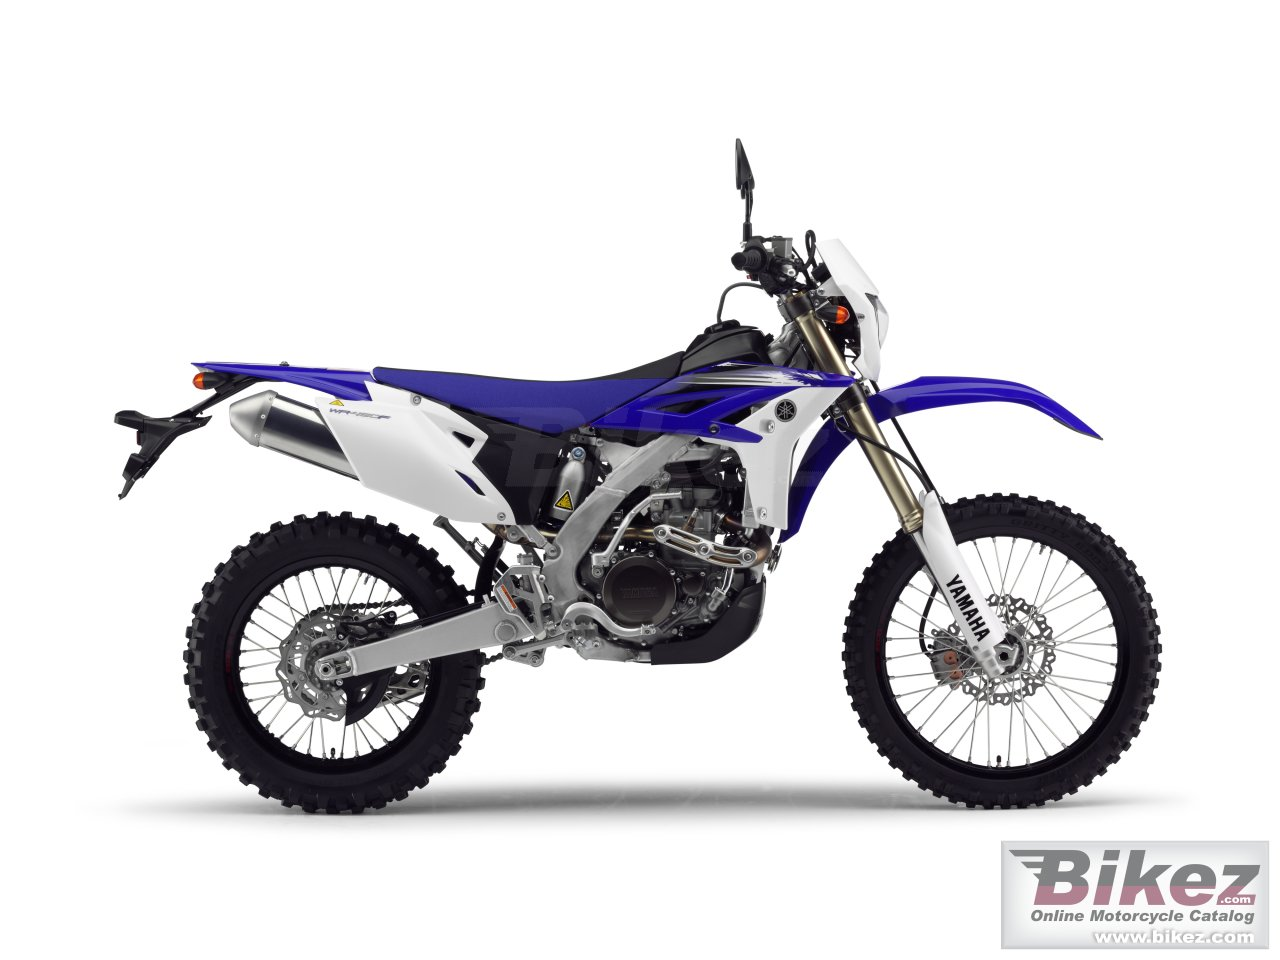 Big Yamaha wr450f picture and wallpaper from Bikez.com